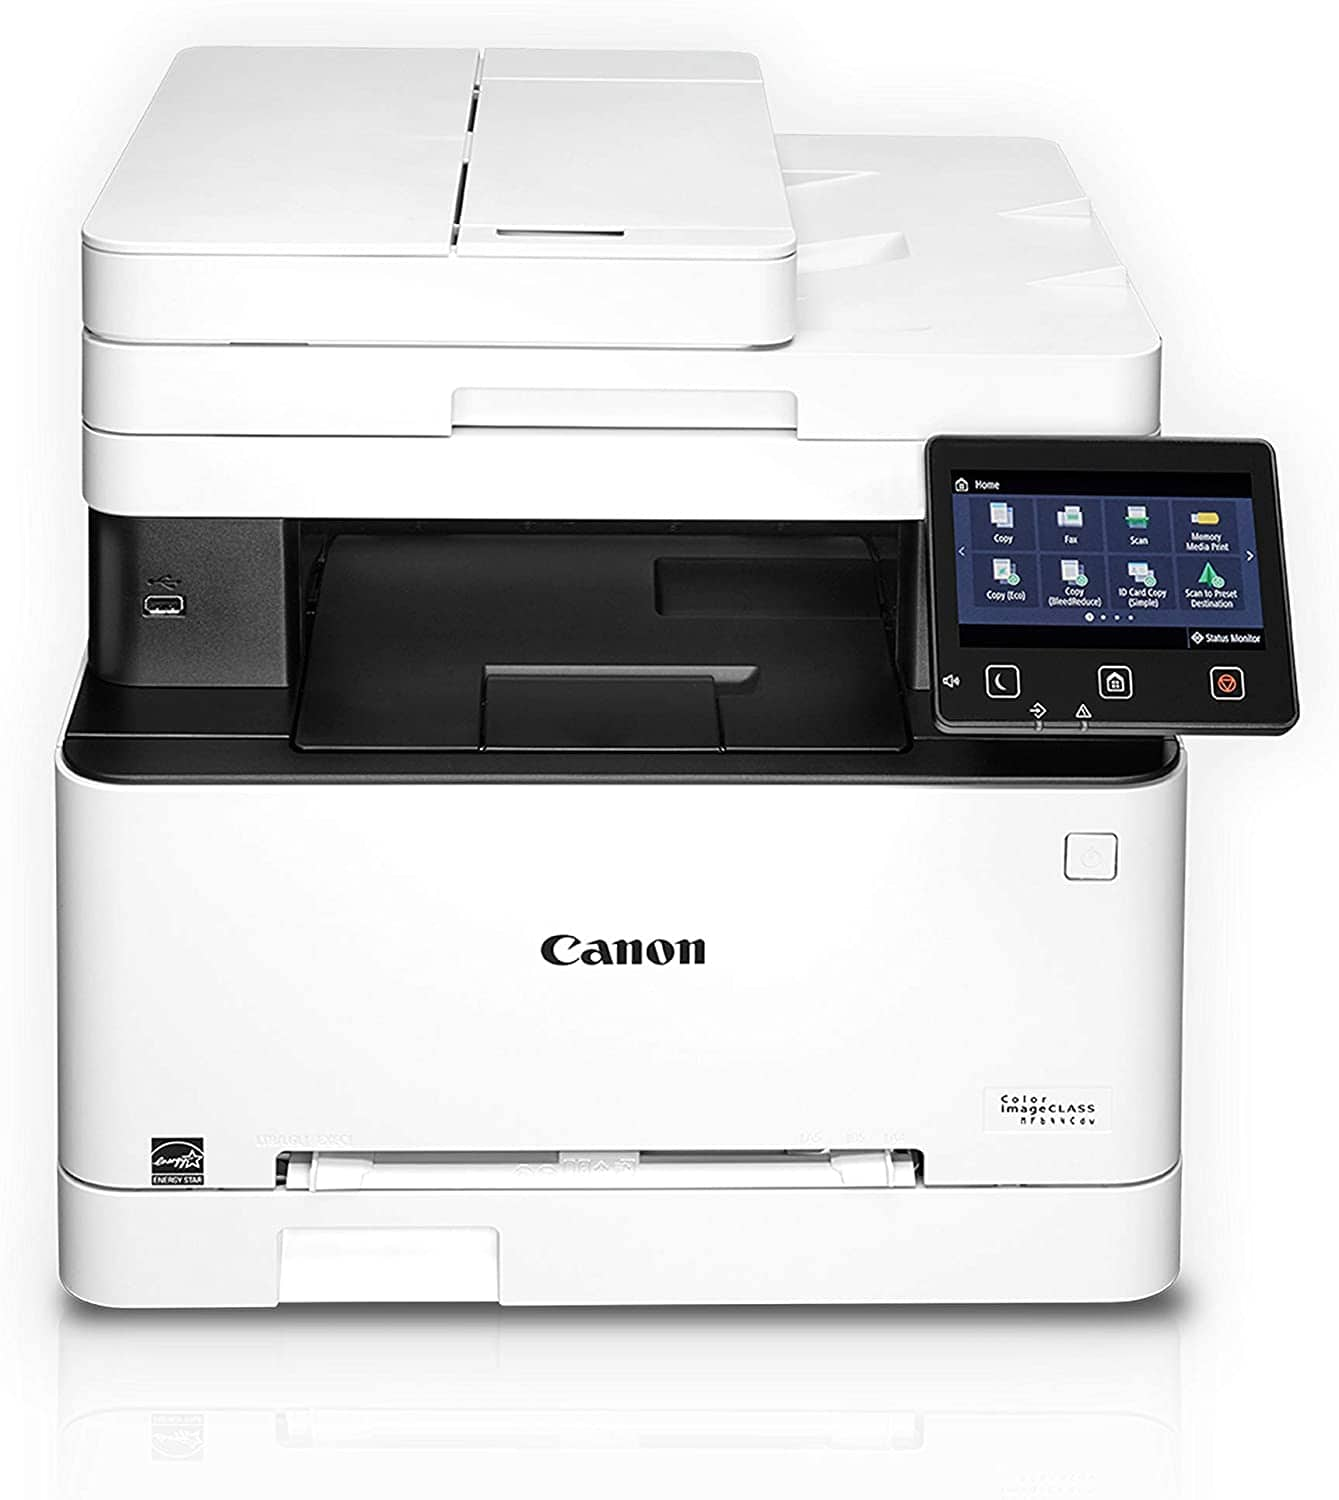 Canon Color Laser Printer with Document Feeder $319